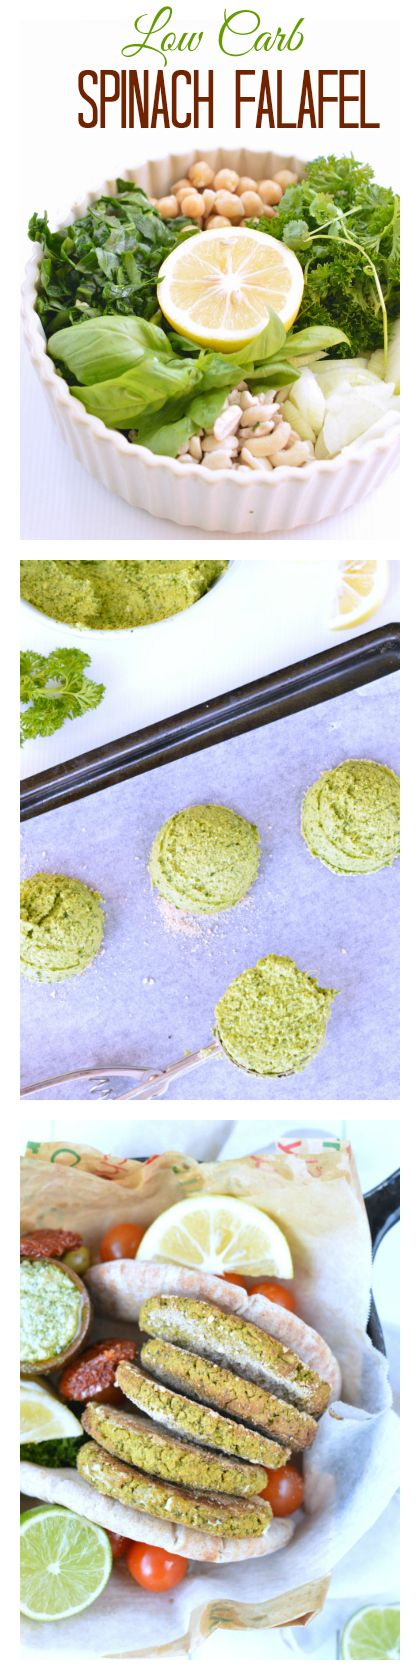 Easy Spinach Falafel Ready In 10 Min In A Food Processor